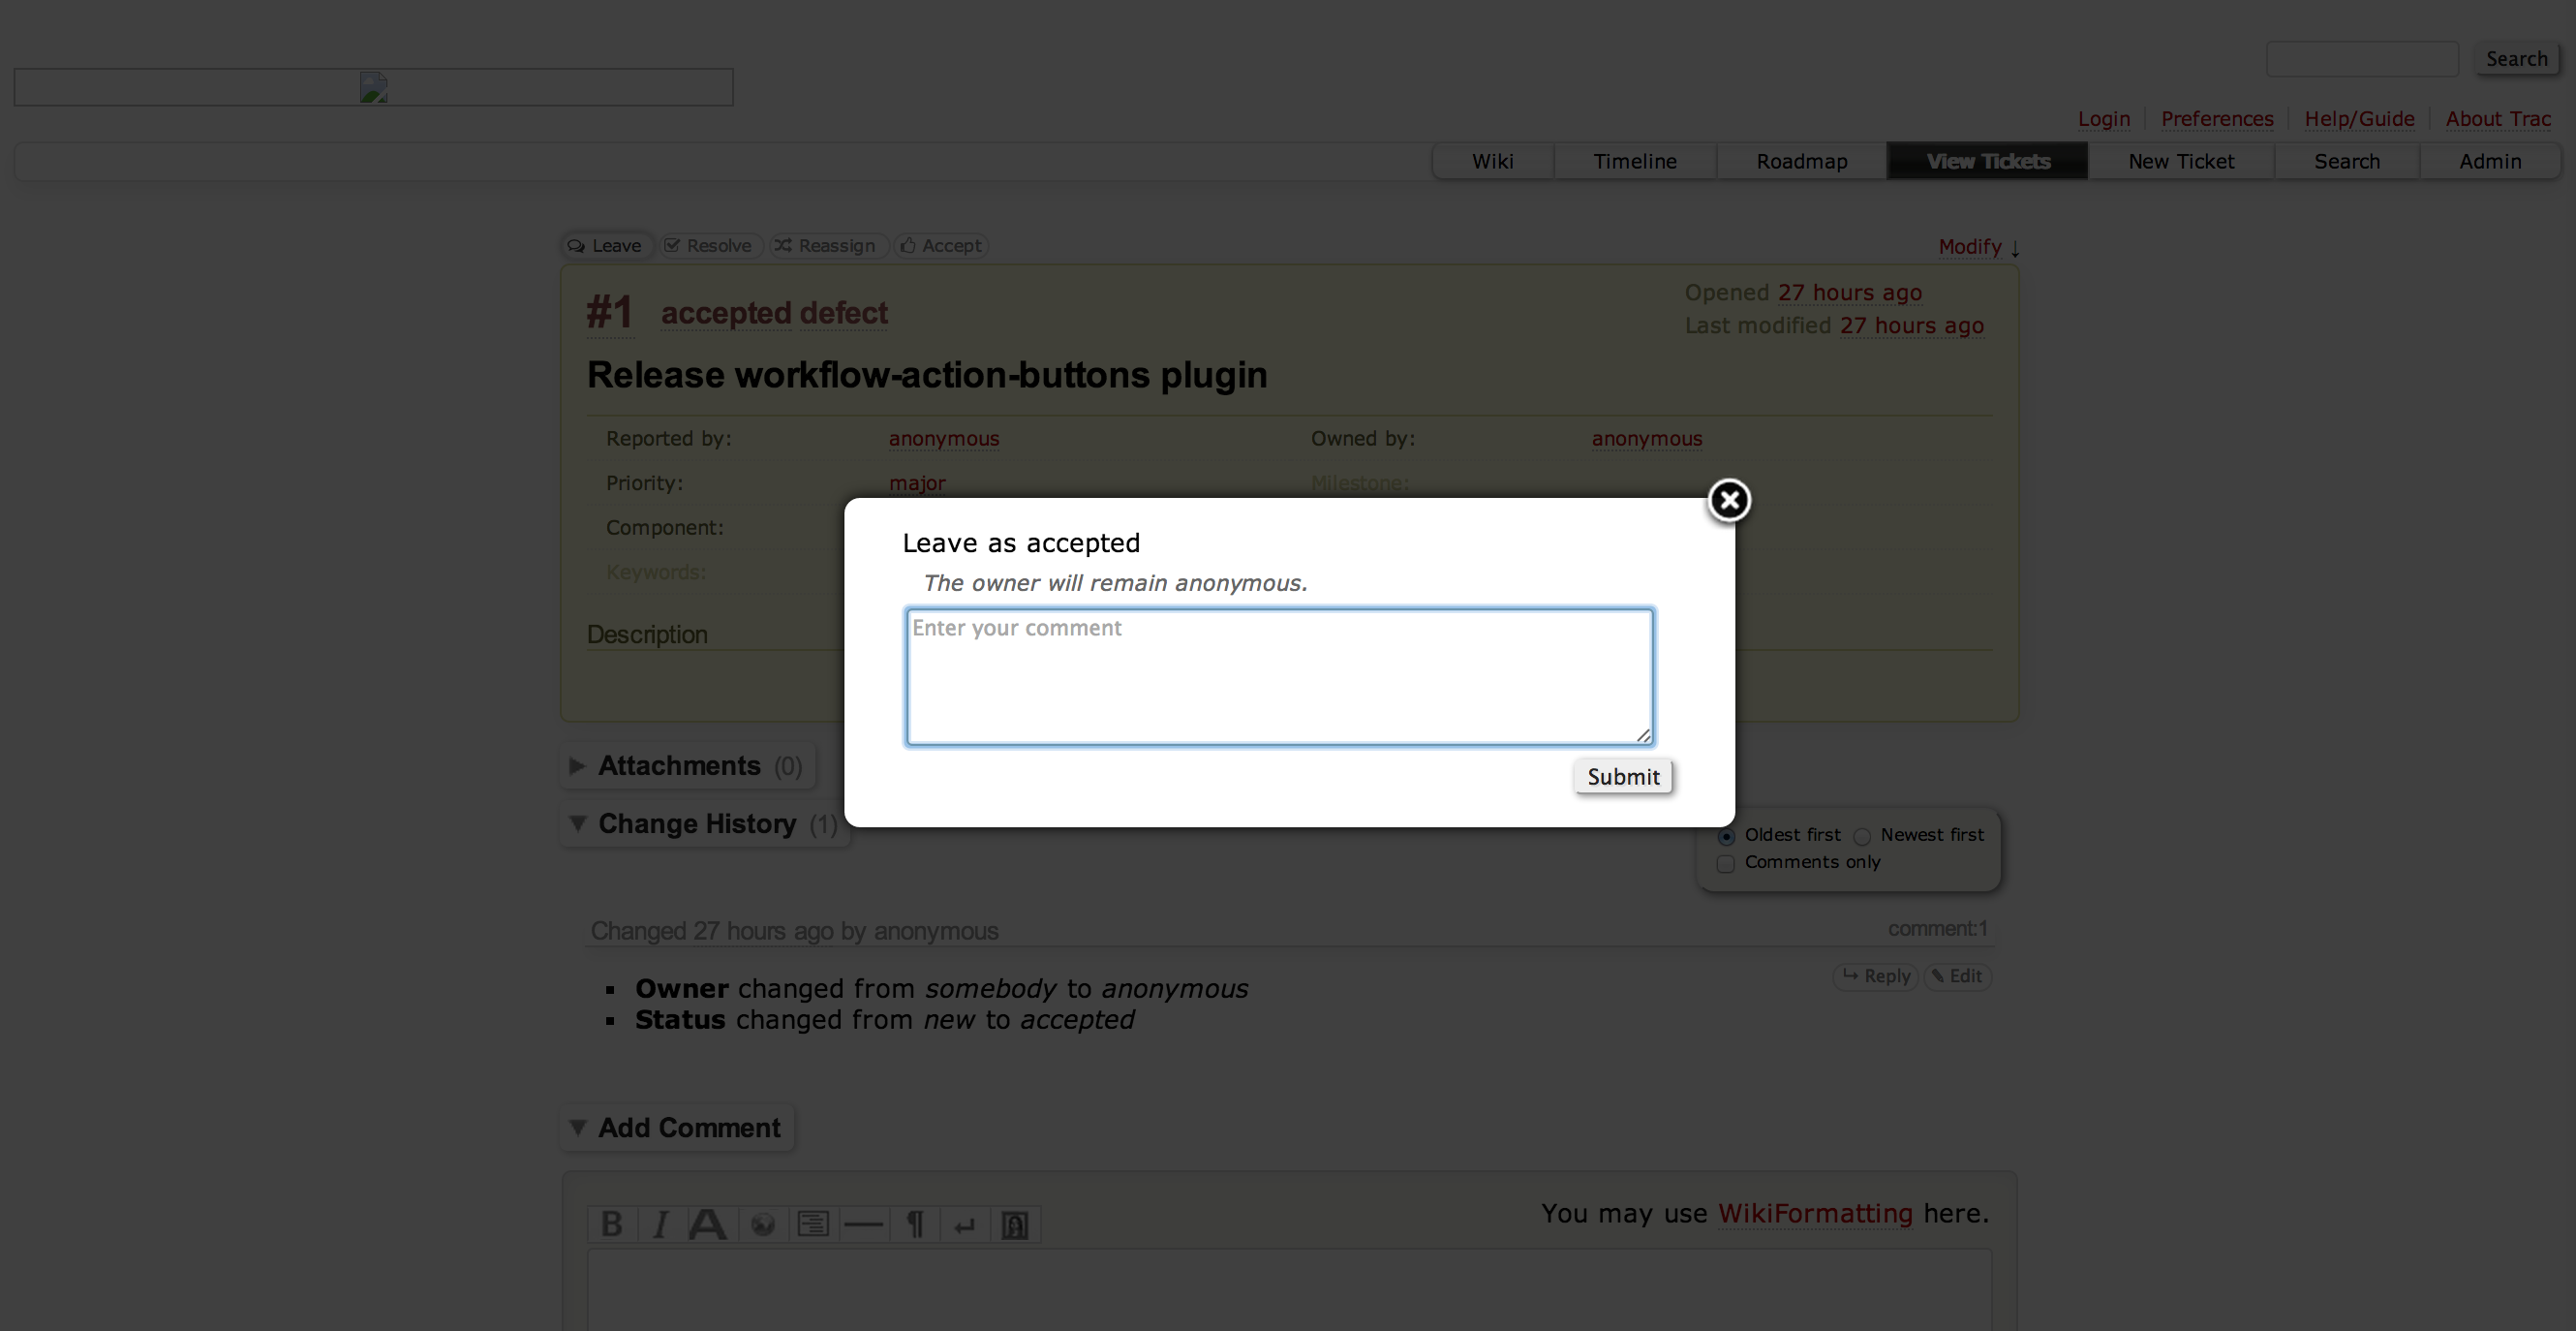 Screenshot of the plugin's modal form prompting the user for additional information after an action button is clicked